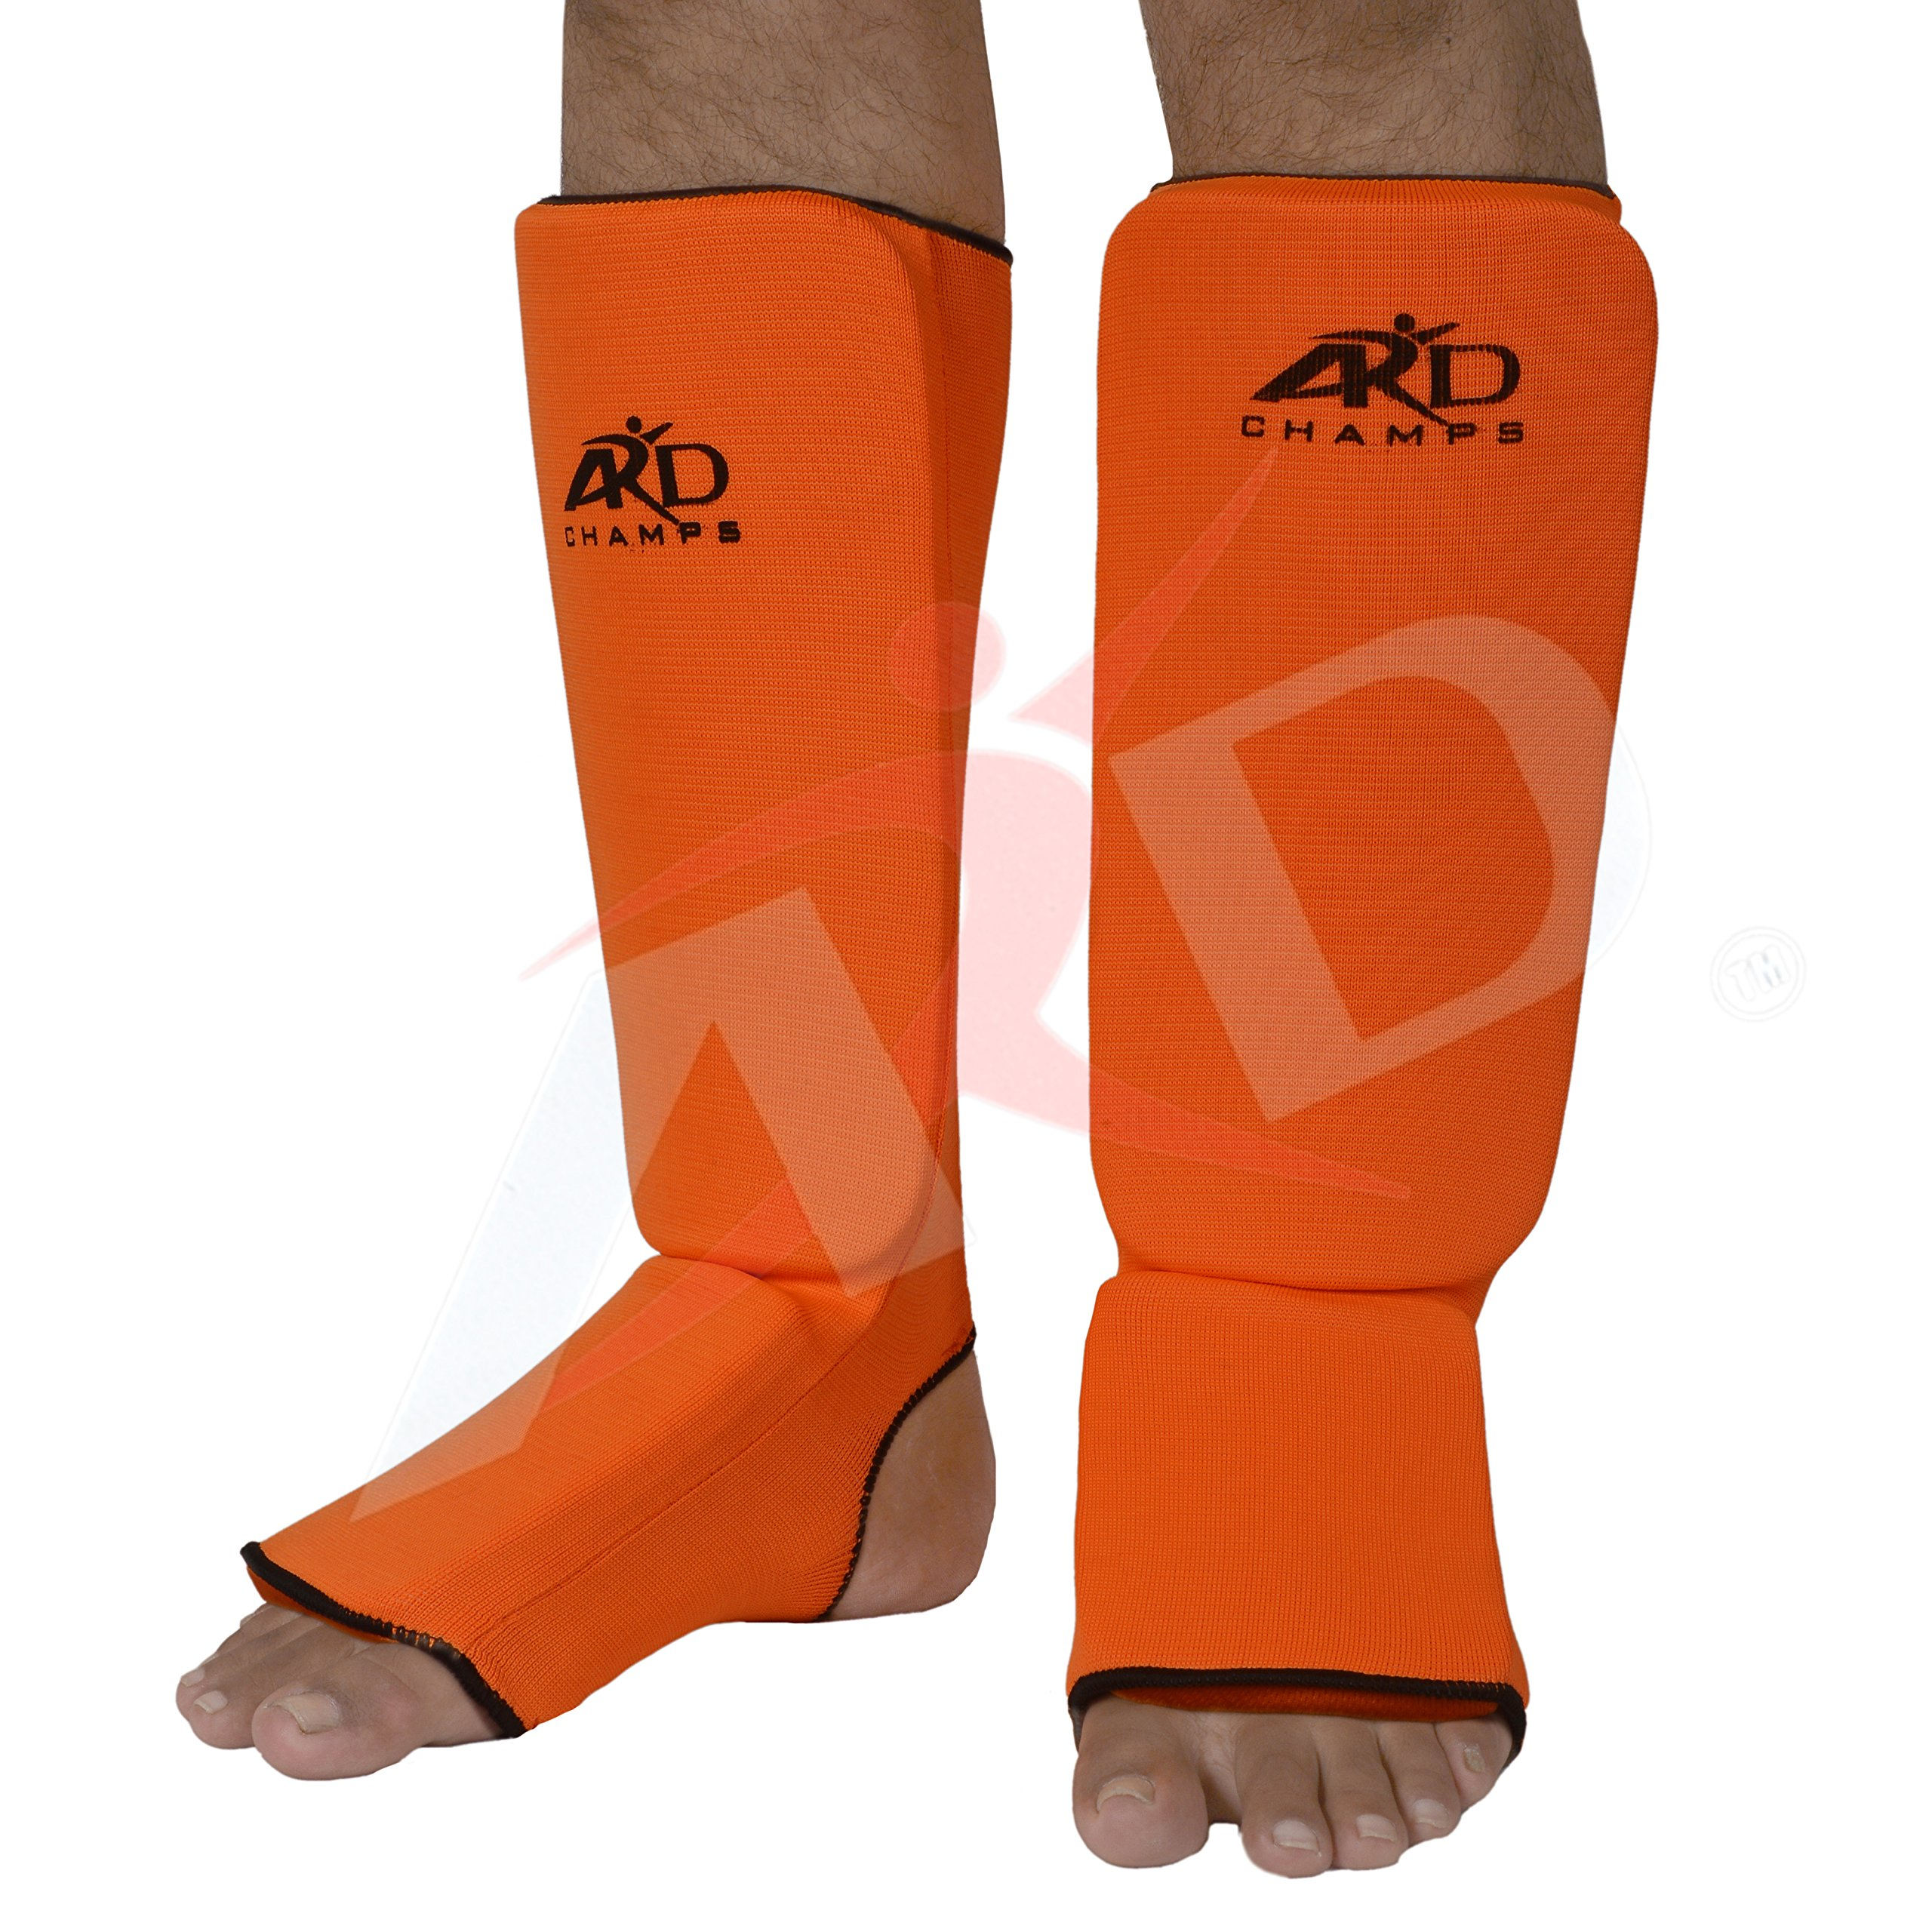 ARD Shin Instep Protectors, Guards Pads Boxing, MMA, Muay Thai (Orange, Medium) by ARD-Champs